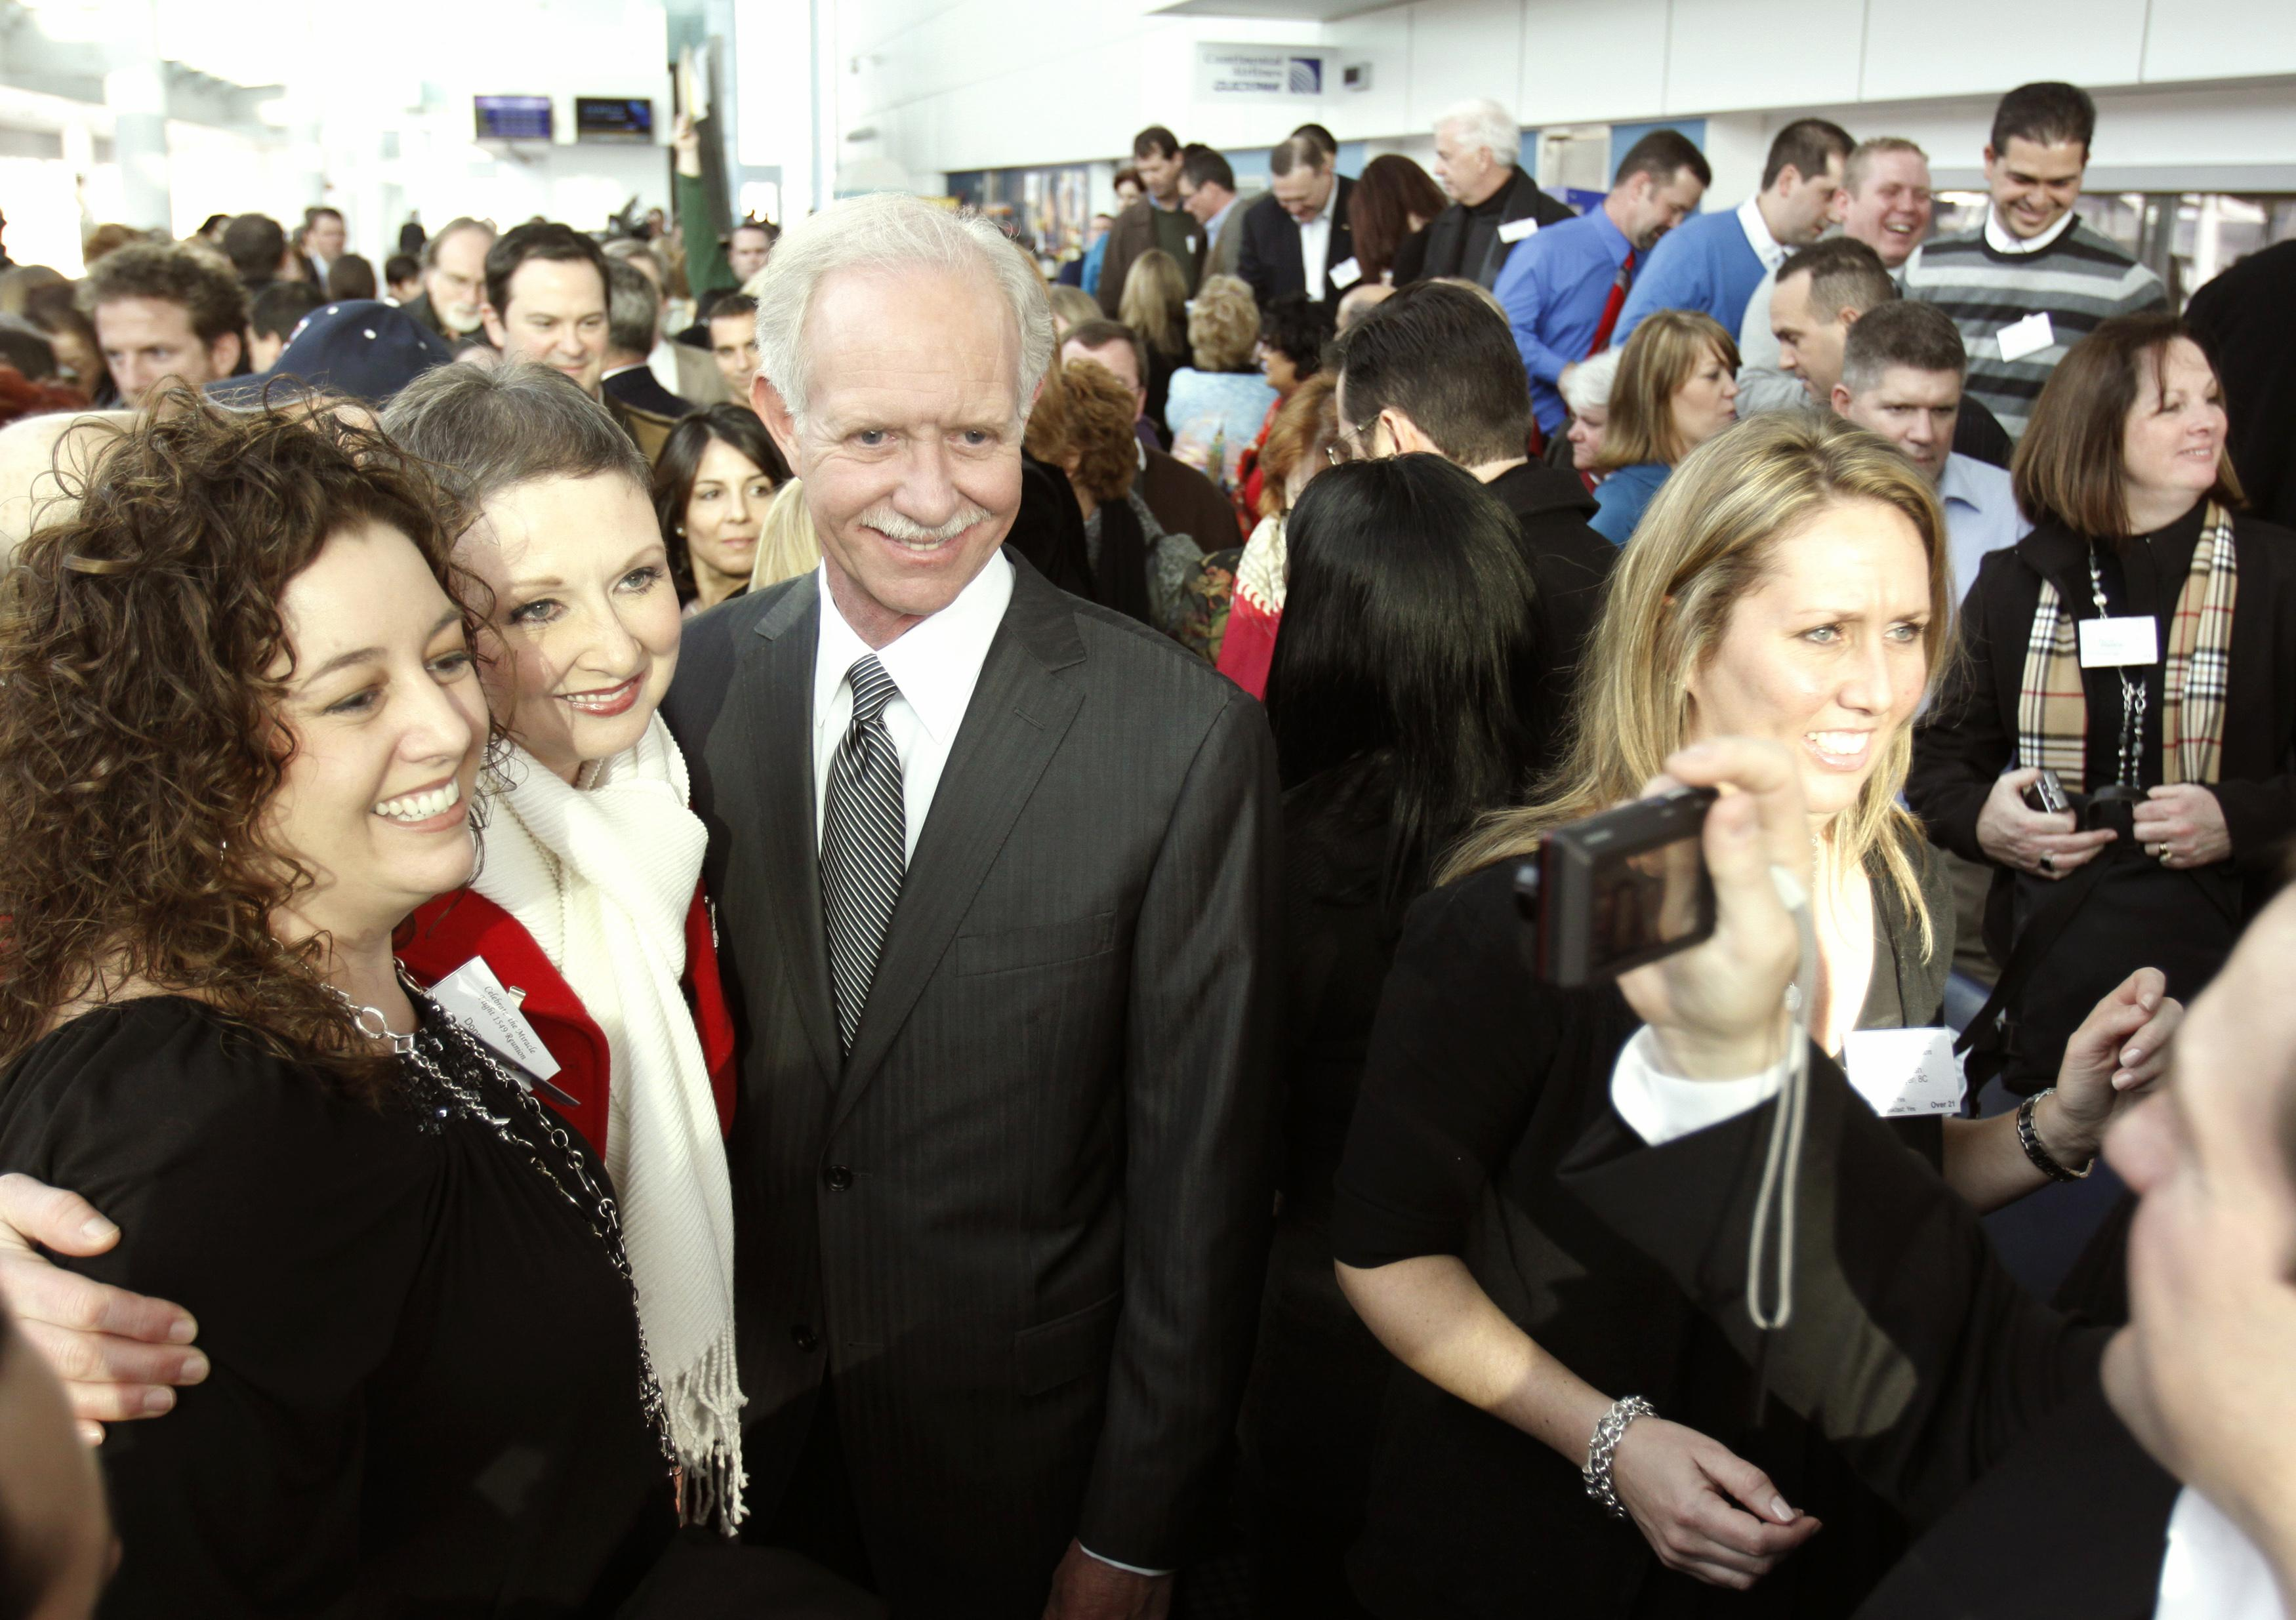 Sully with Passengers